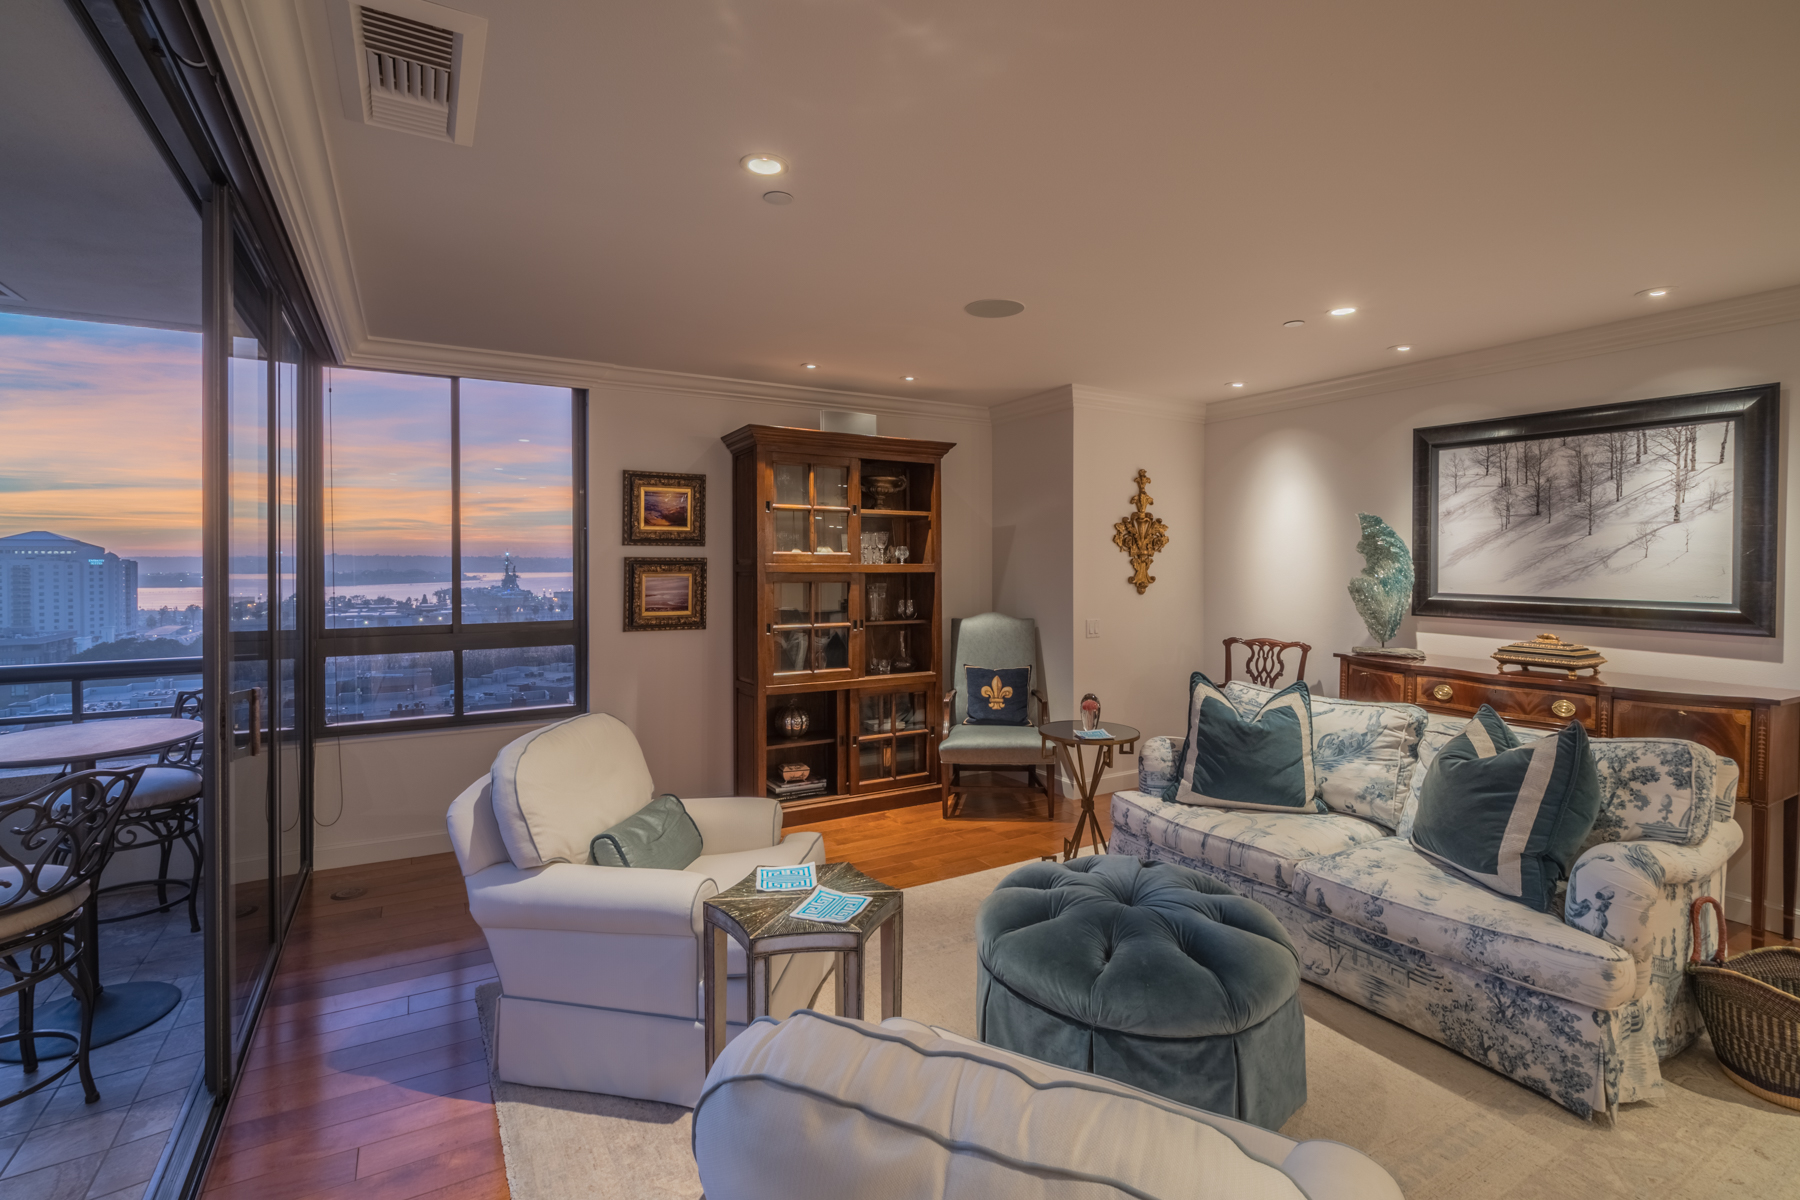 Condominium for Sale at The Meridian 700 Front Street 903, San Diego, California, 92101 United States